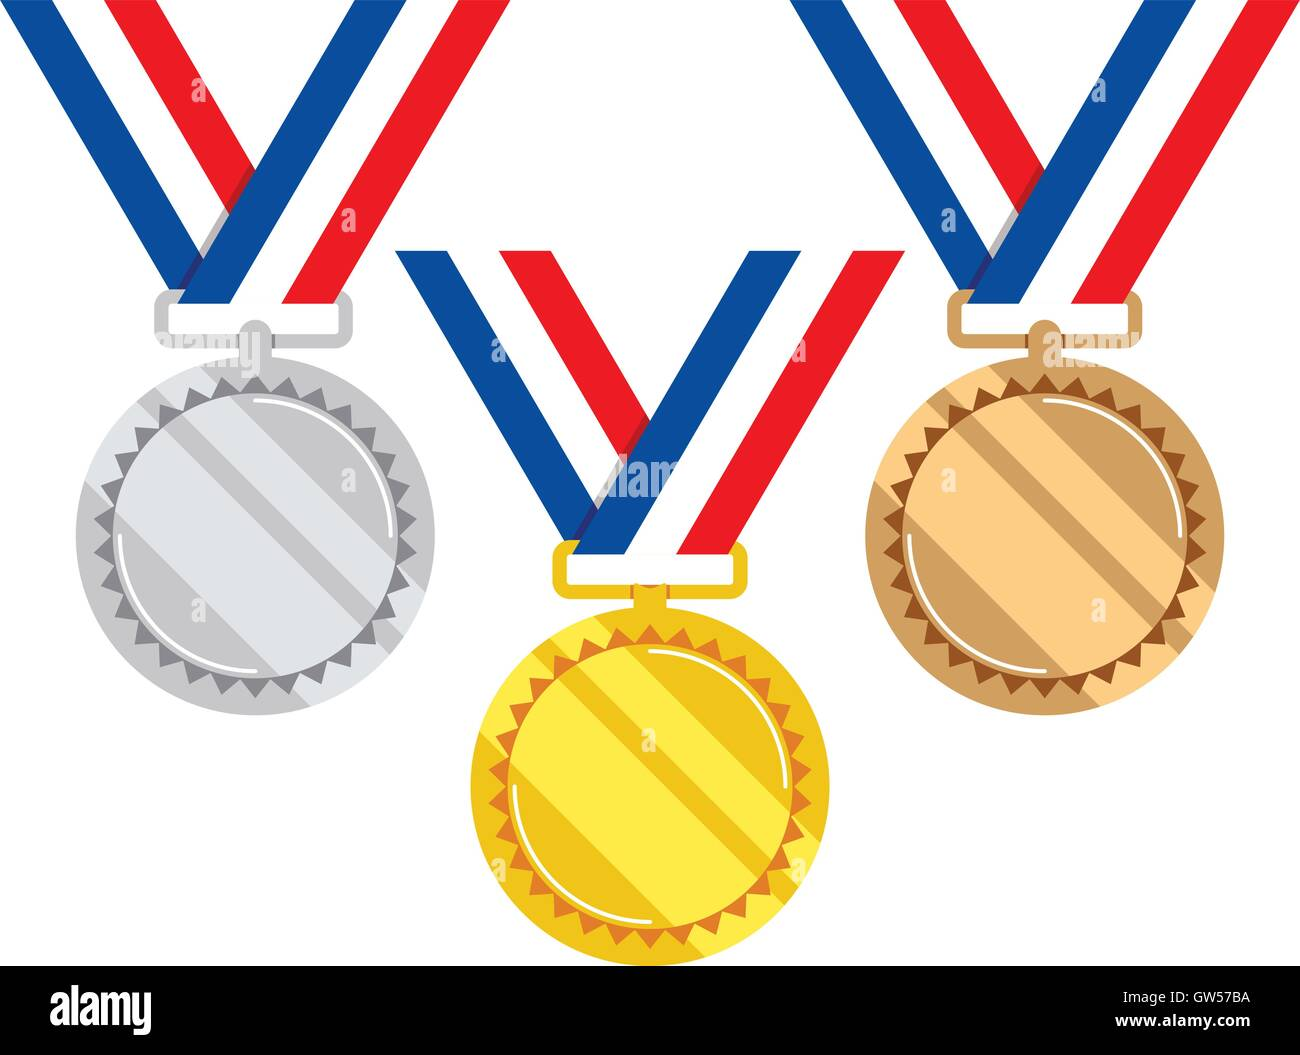 vector set of gold, silver and bronze medals - Stock Vector